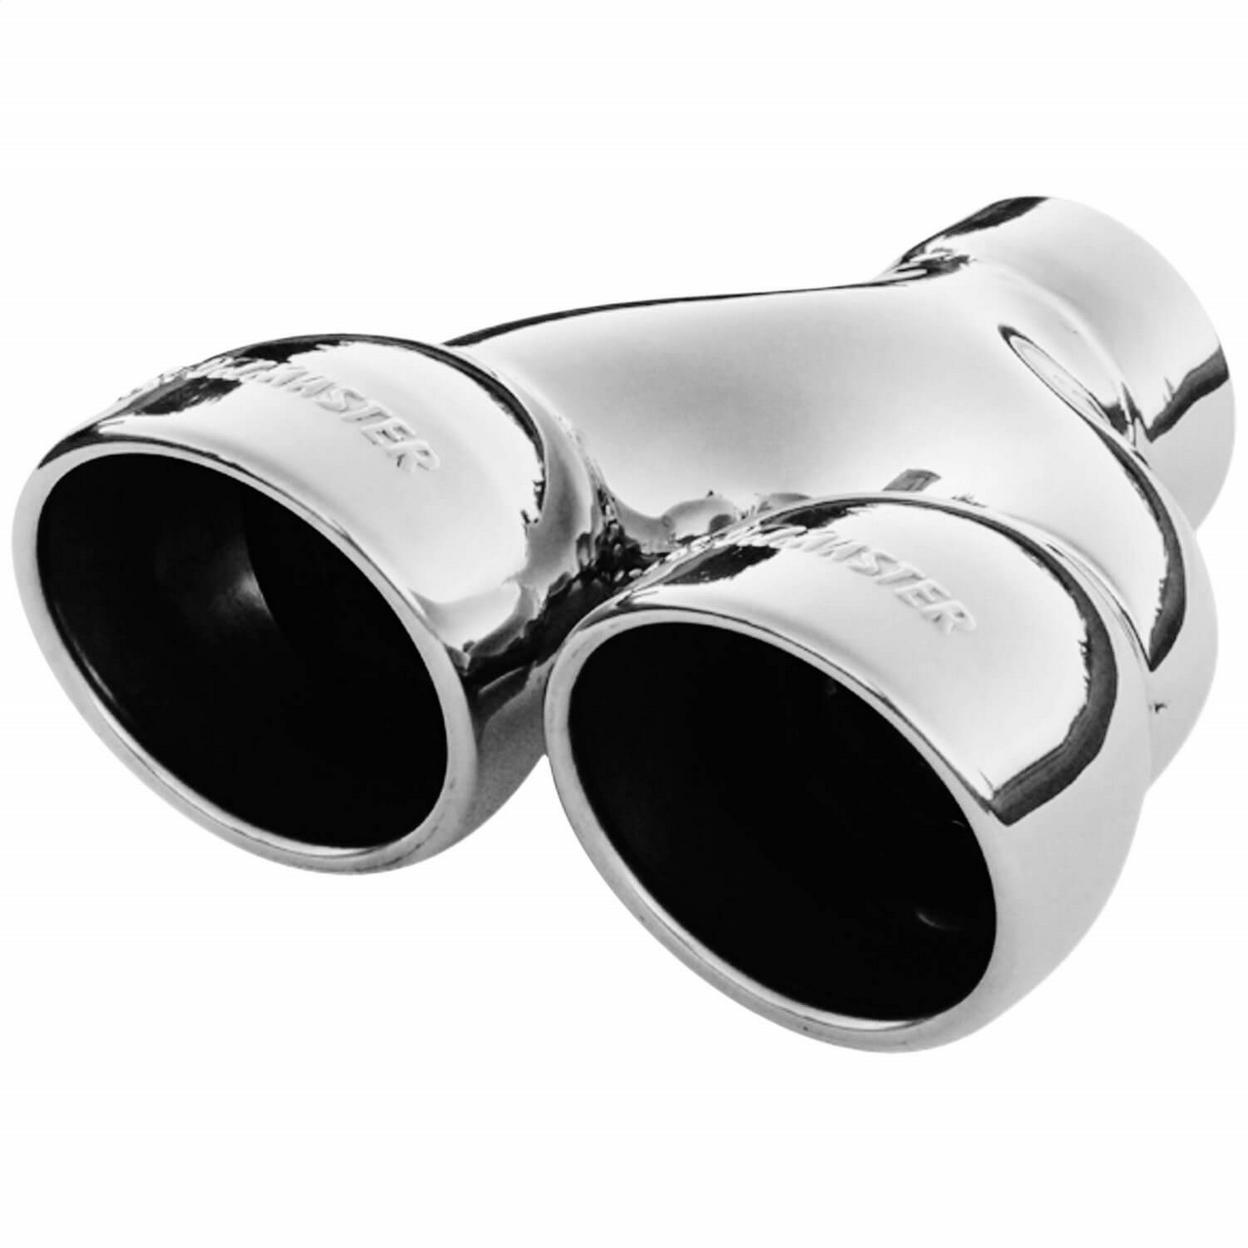 Exhaust Tip - Dual 3.5 in. Rolled Angle Polished SS Fits 2.50 in. Tubing-weld on